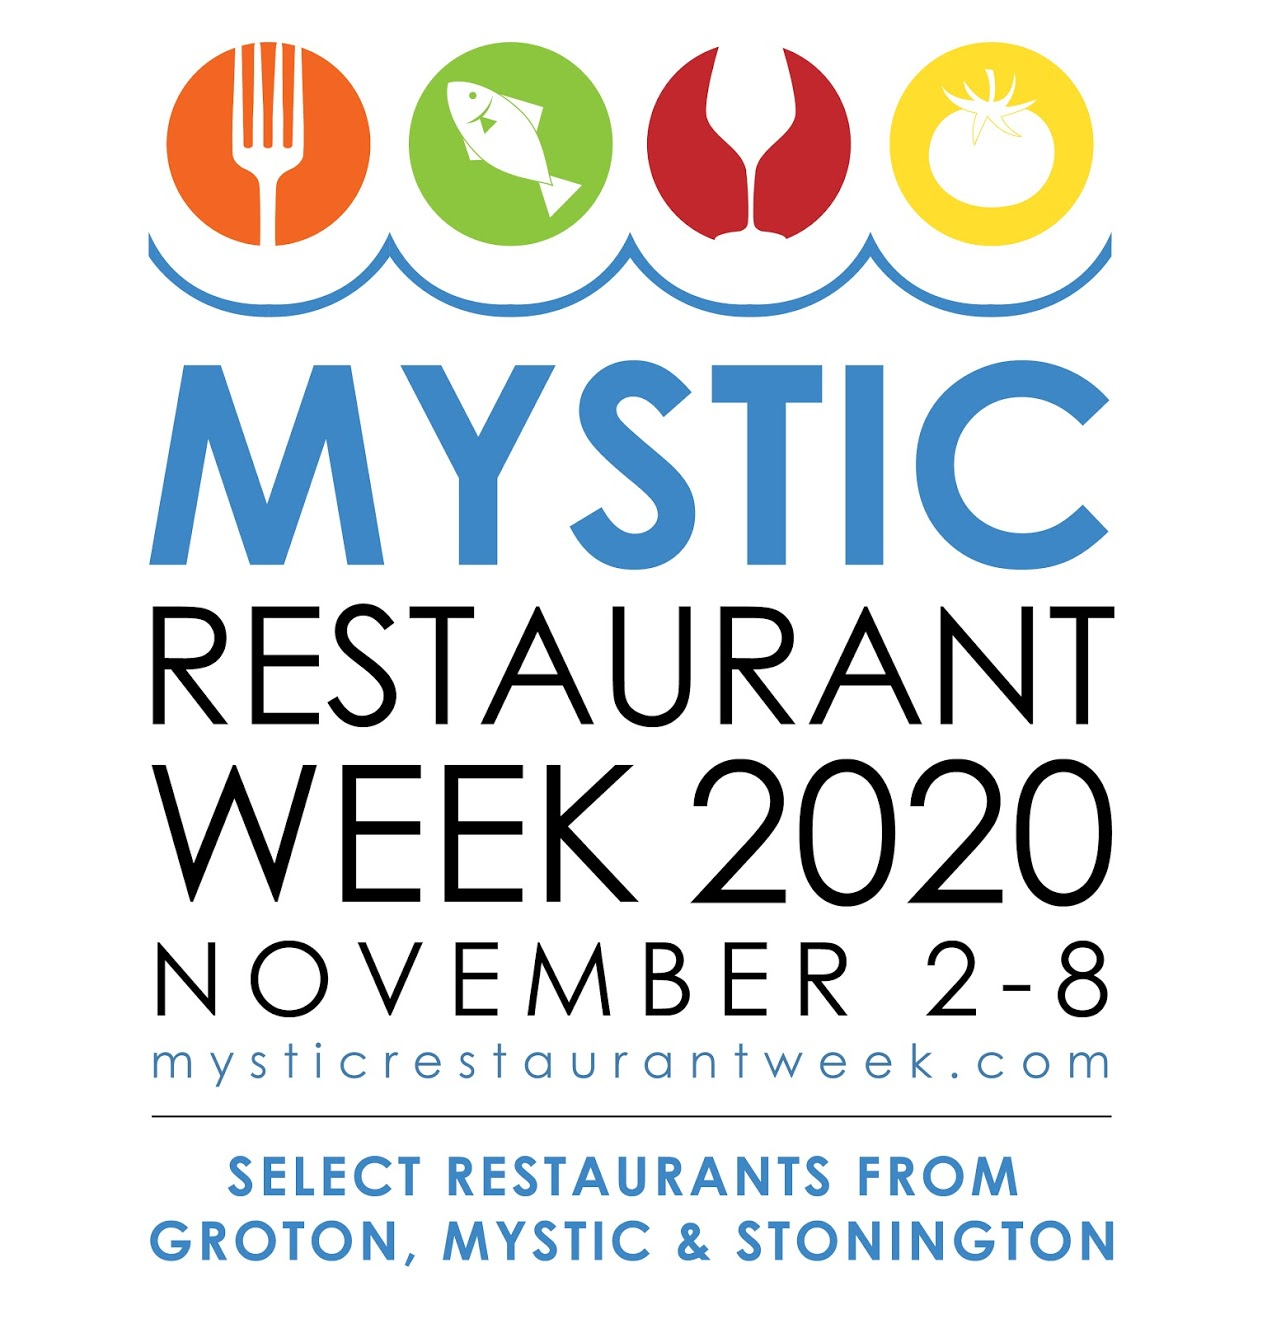 Mystic Restaurant Week 2020 Photo - Click Here to See